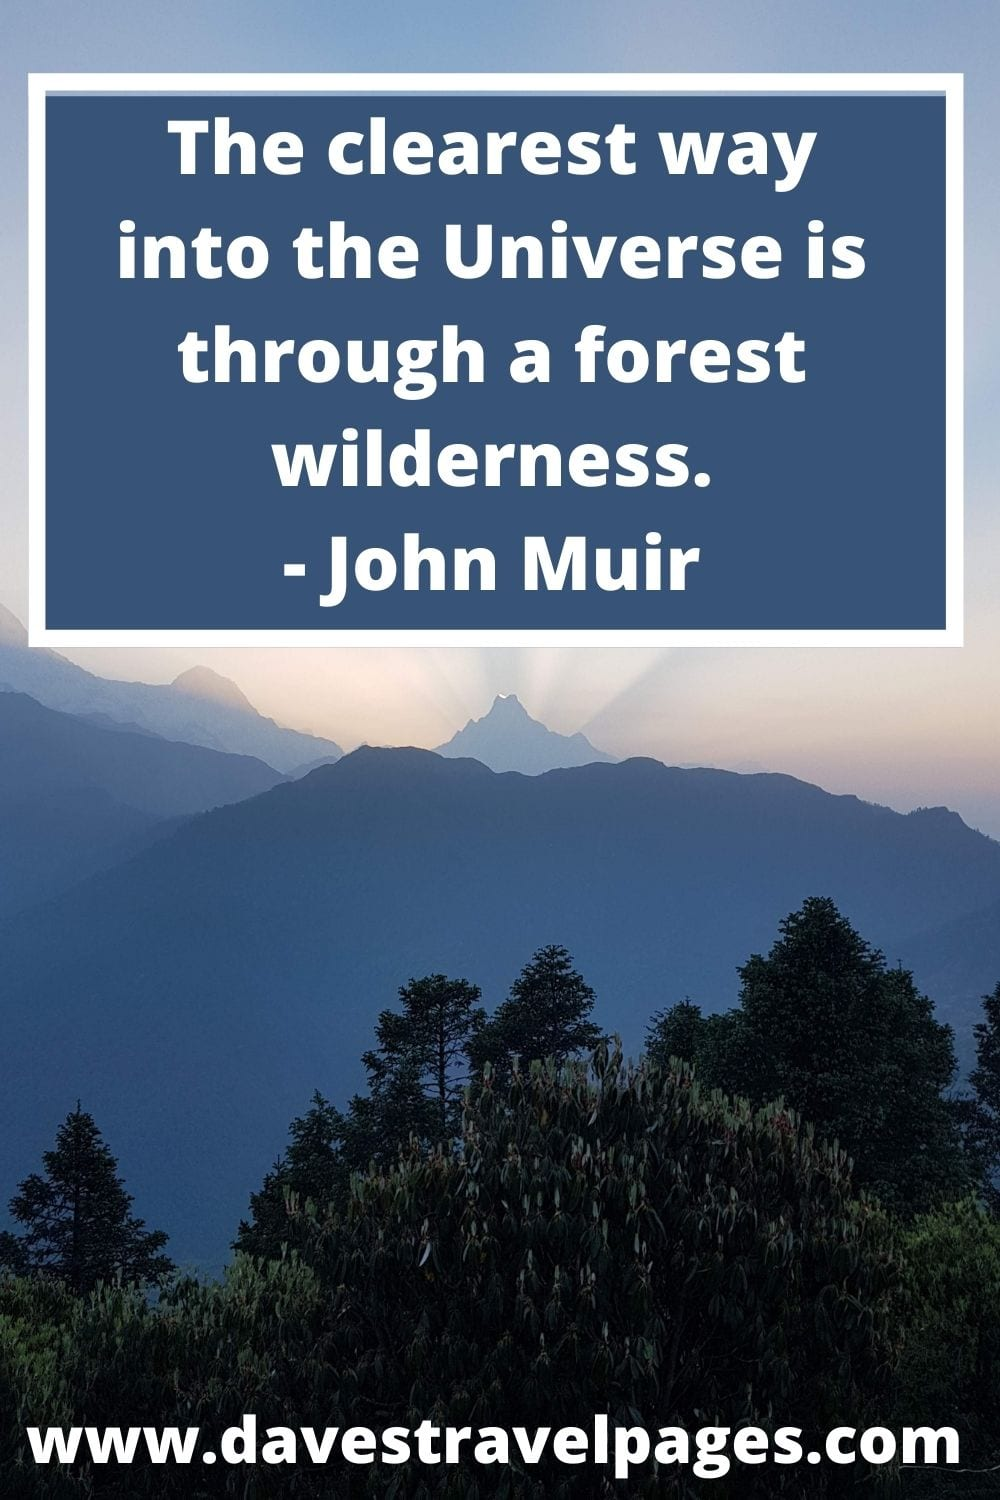 The clearest way into the Universe is through a forest wilderness. - John Muir